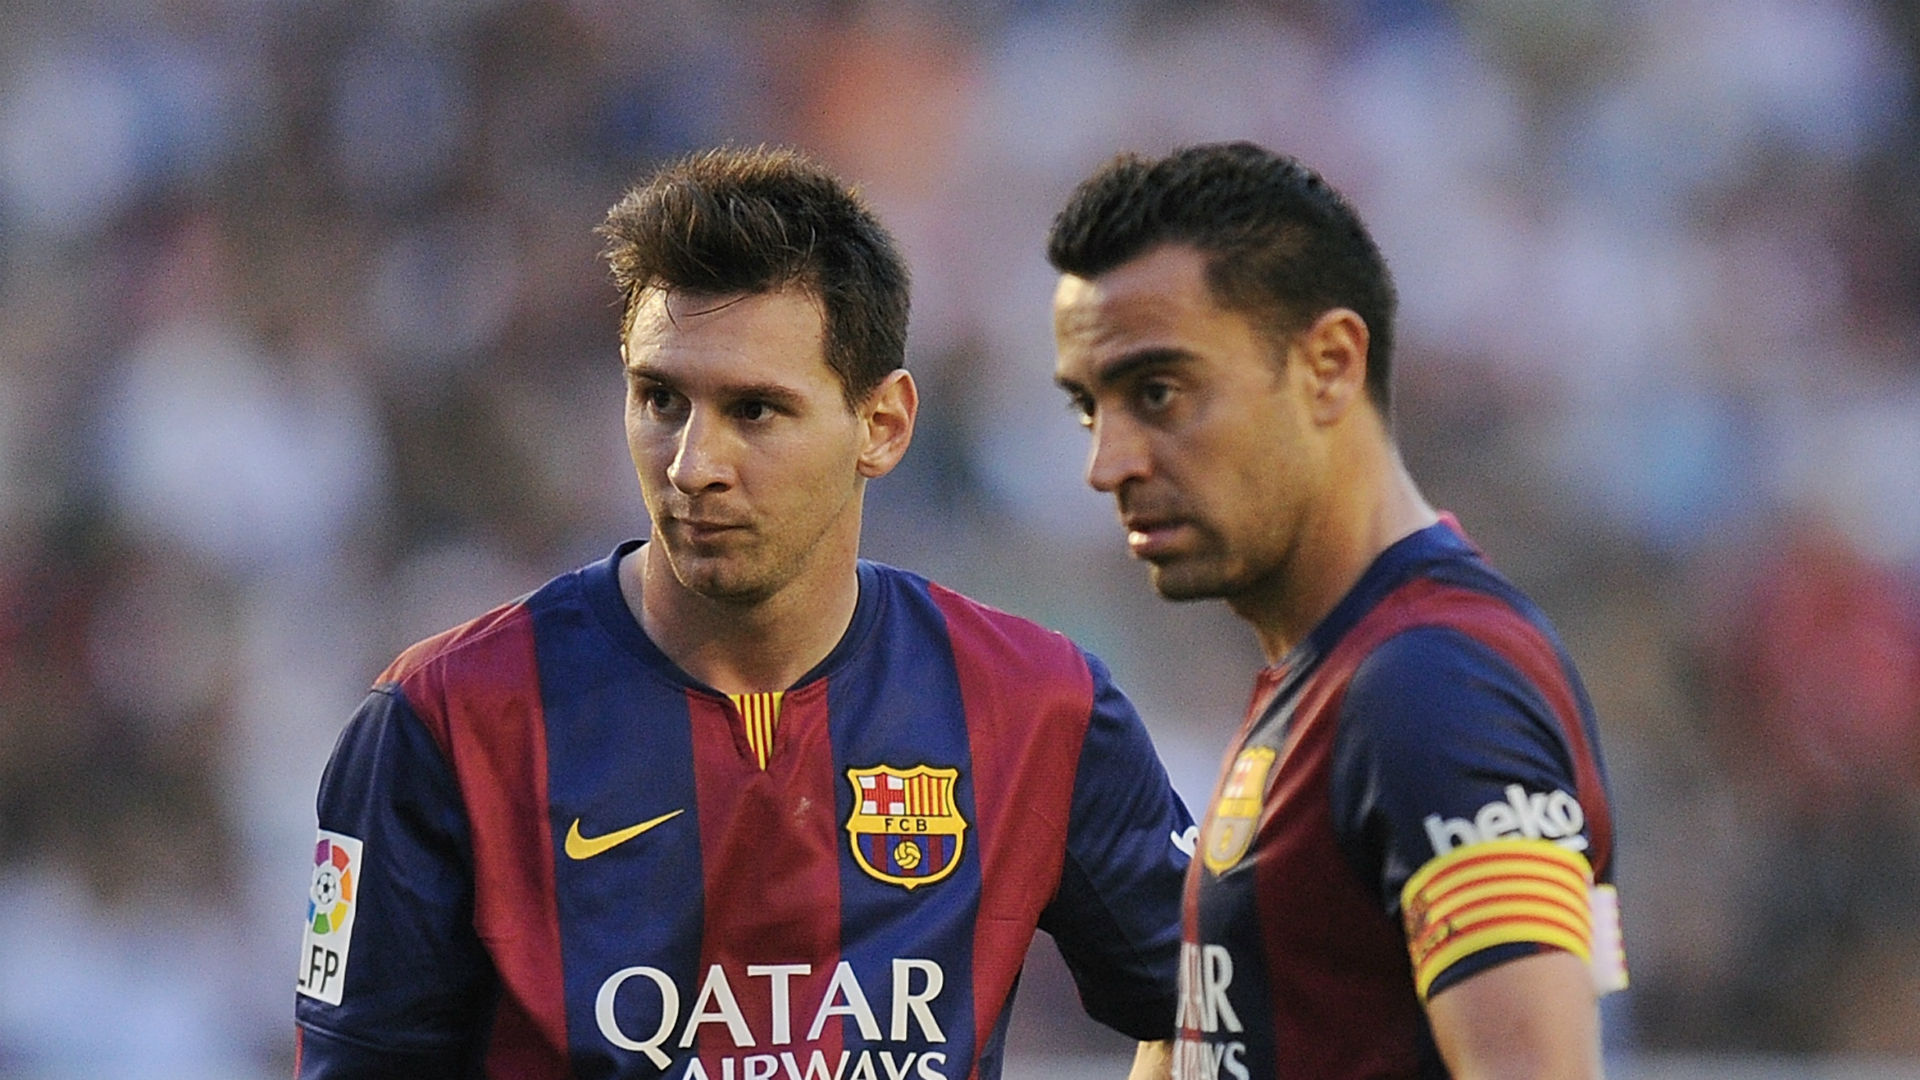 I told Xavi to go to Barcelona while the God of Football, Messi ...